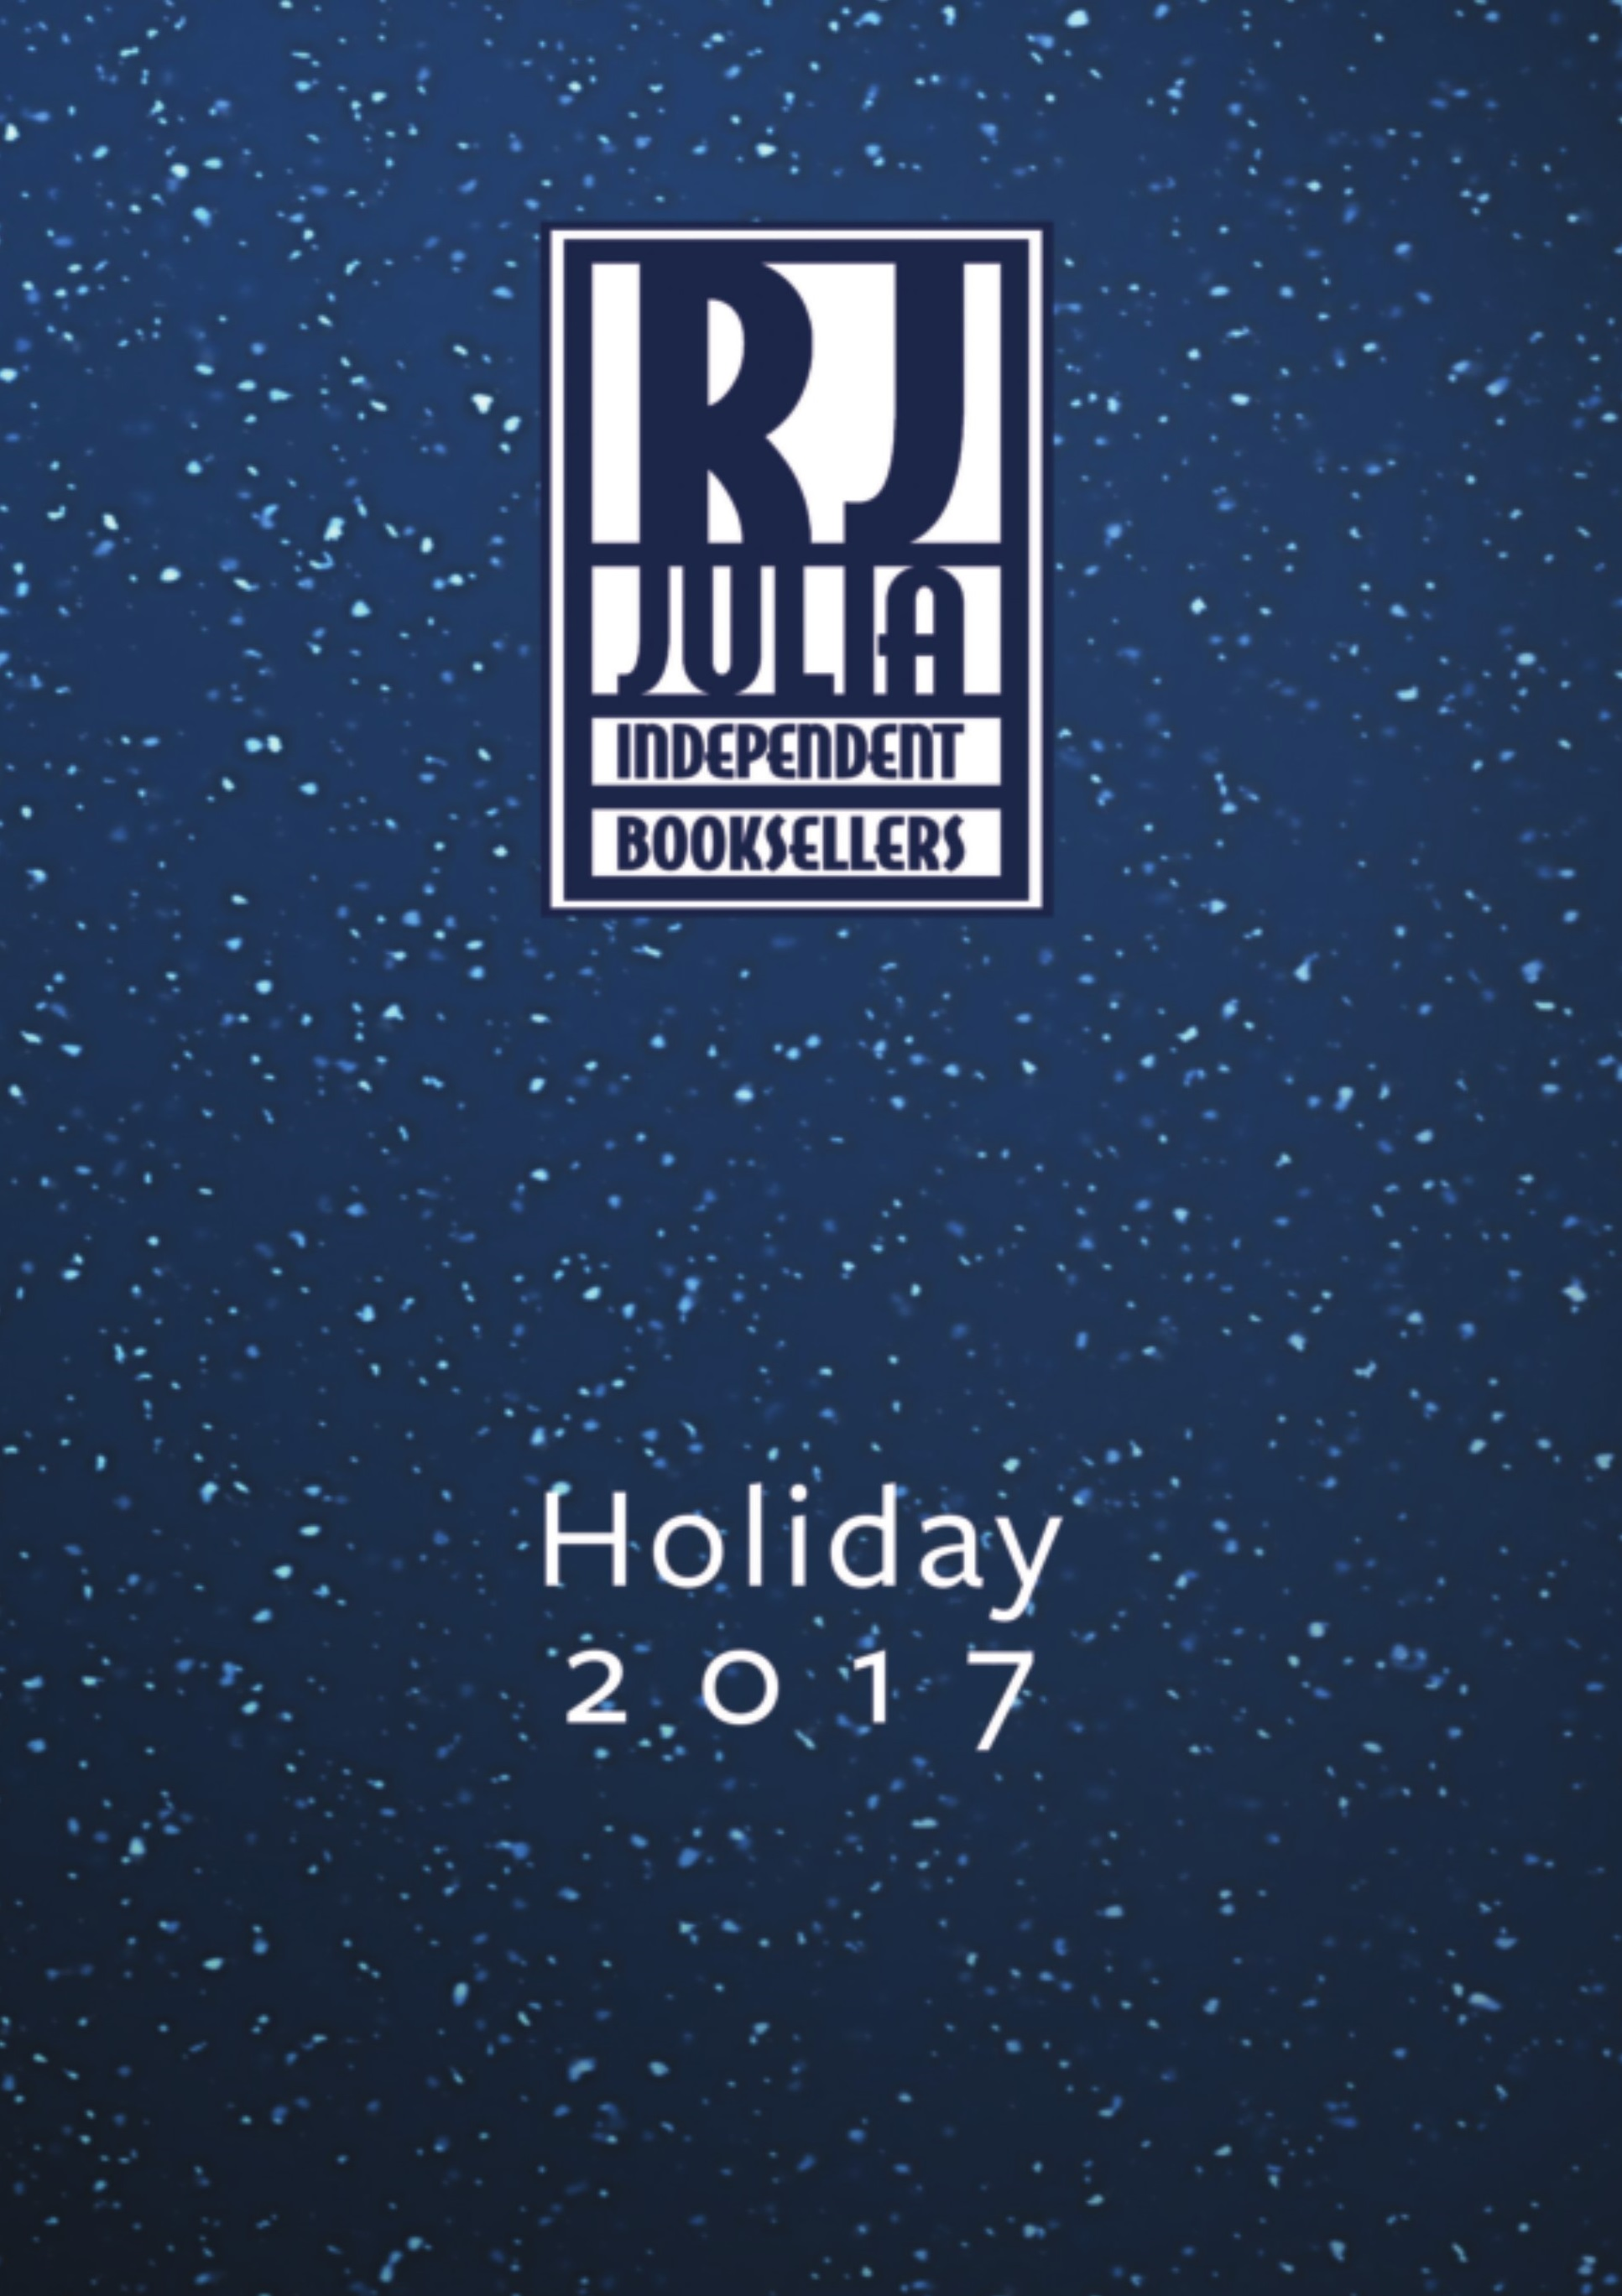 R.J. Julia Holiday Catalog